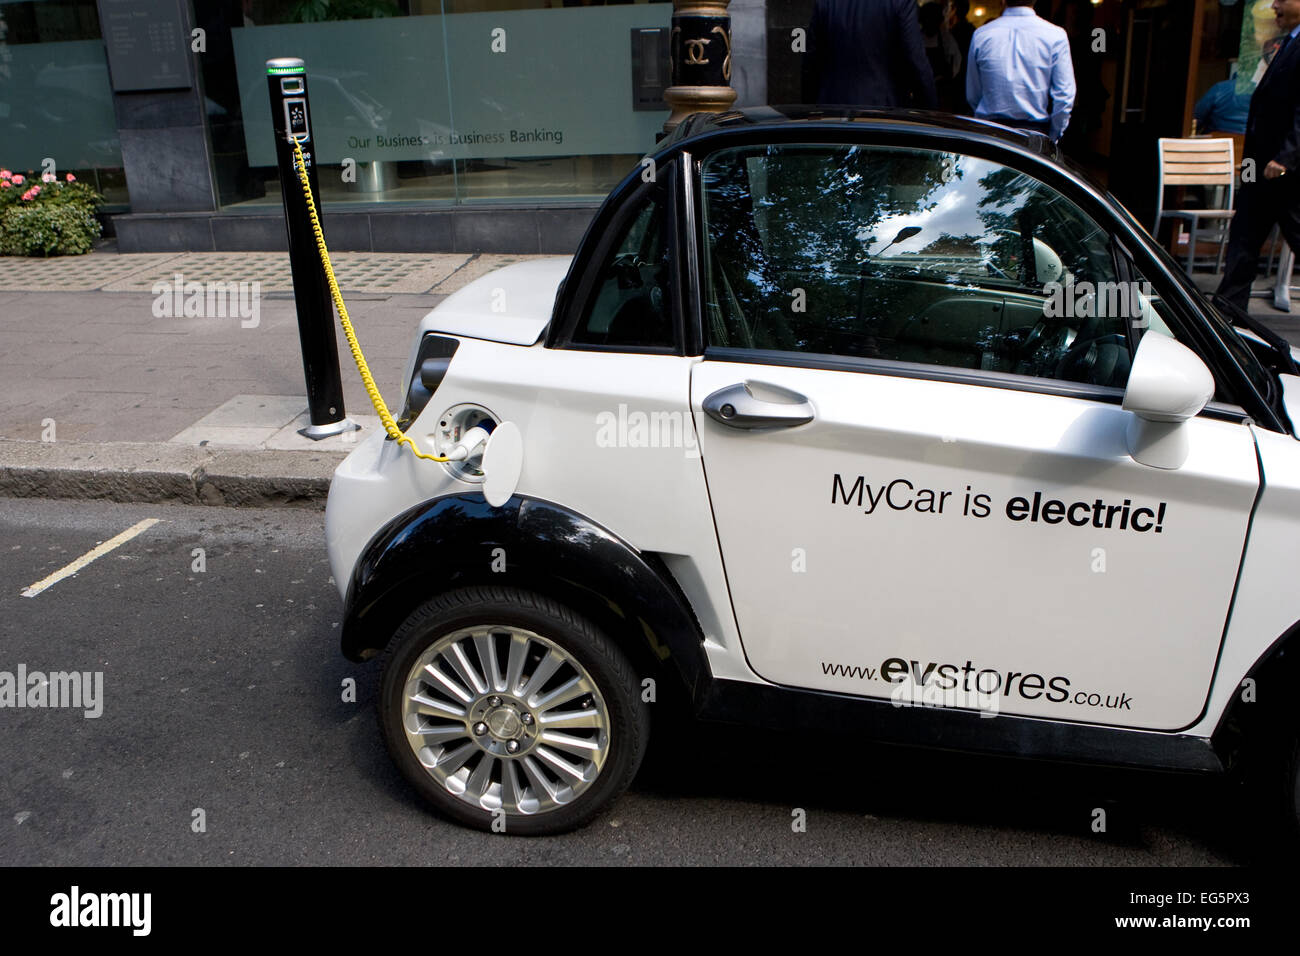 An Electric powered mini car parked in a battery charging bay in central London, England - Stock Image